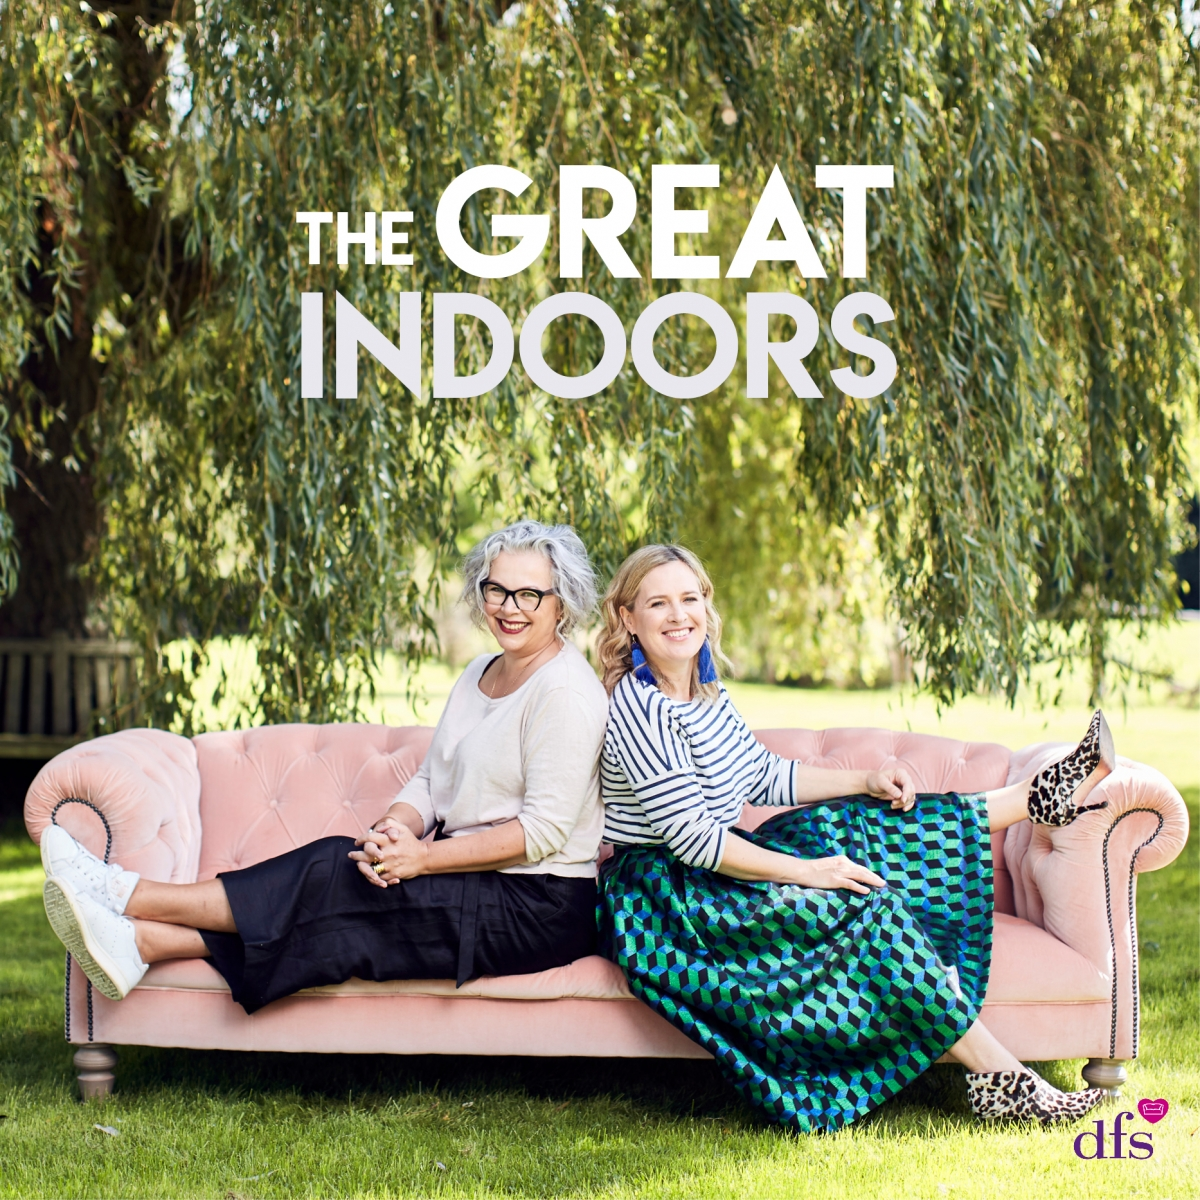 the Great Indoors podcast presented by TV presenter Sophie Robinson and author Kate watson Smyth